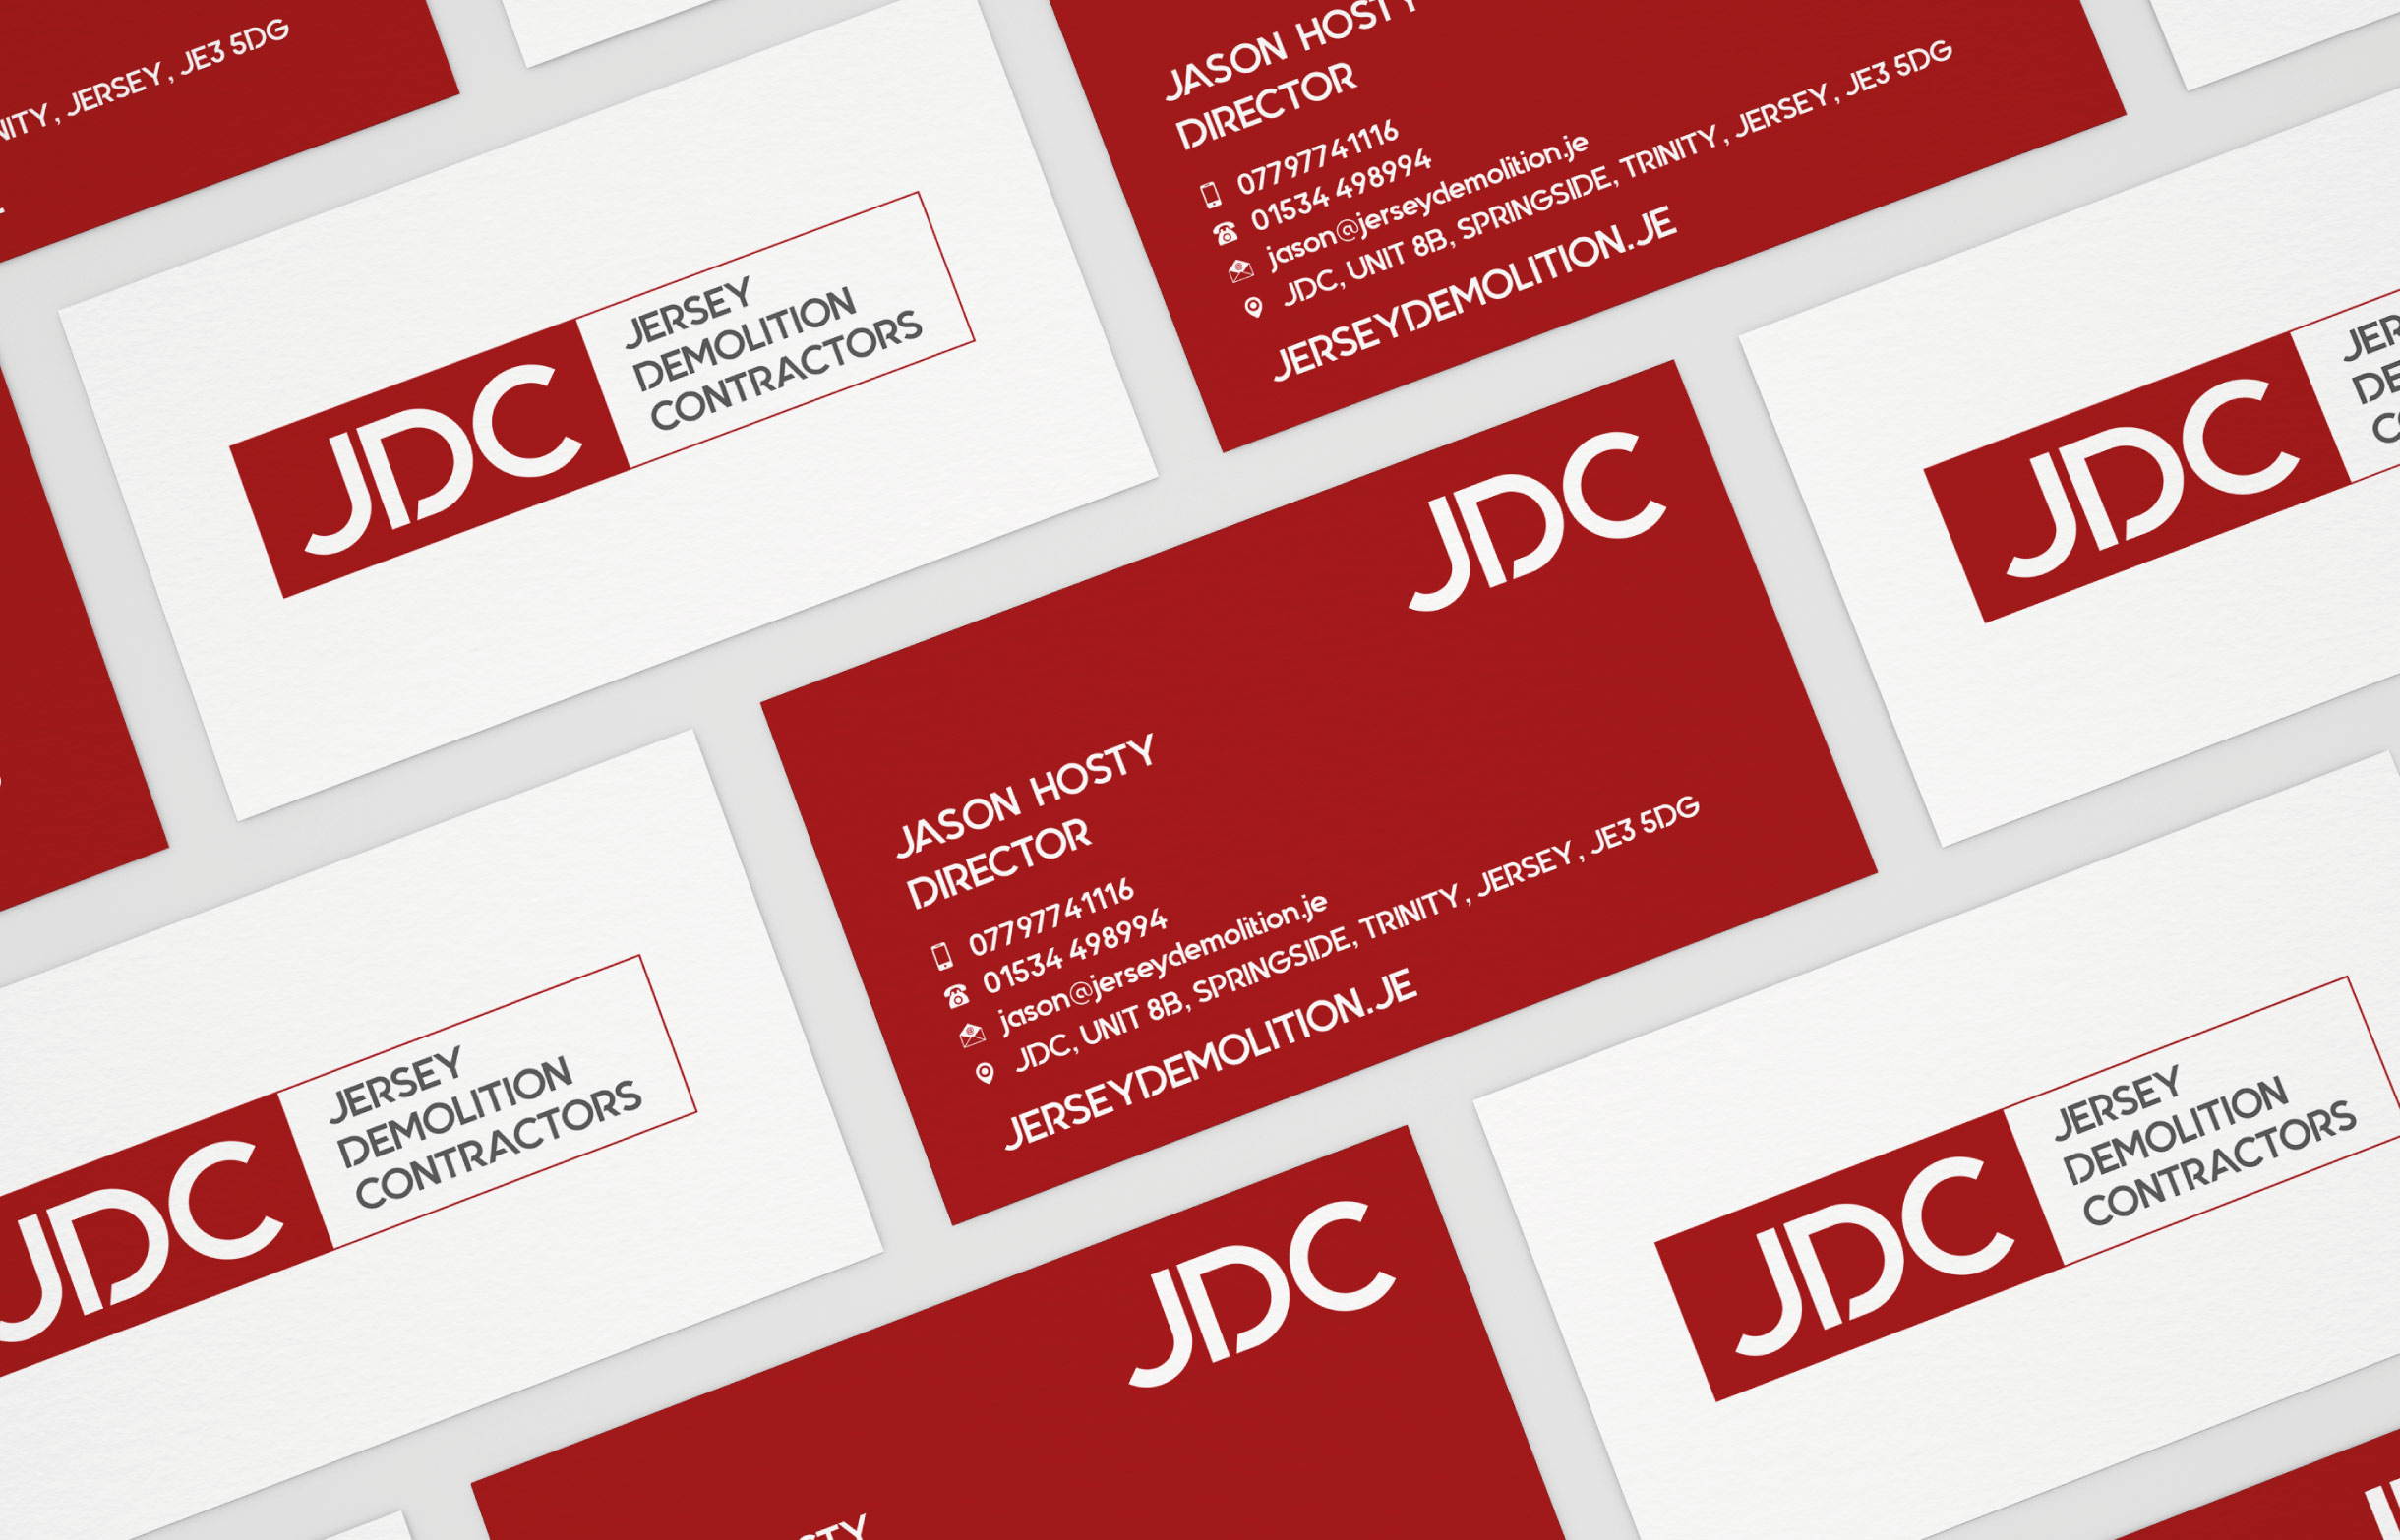 Quints Design co - Portfolio - JDC